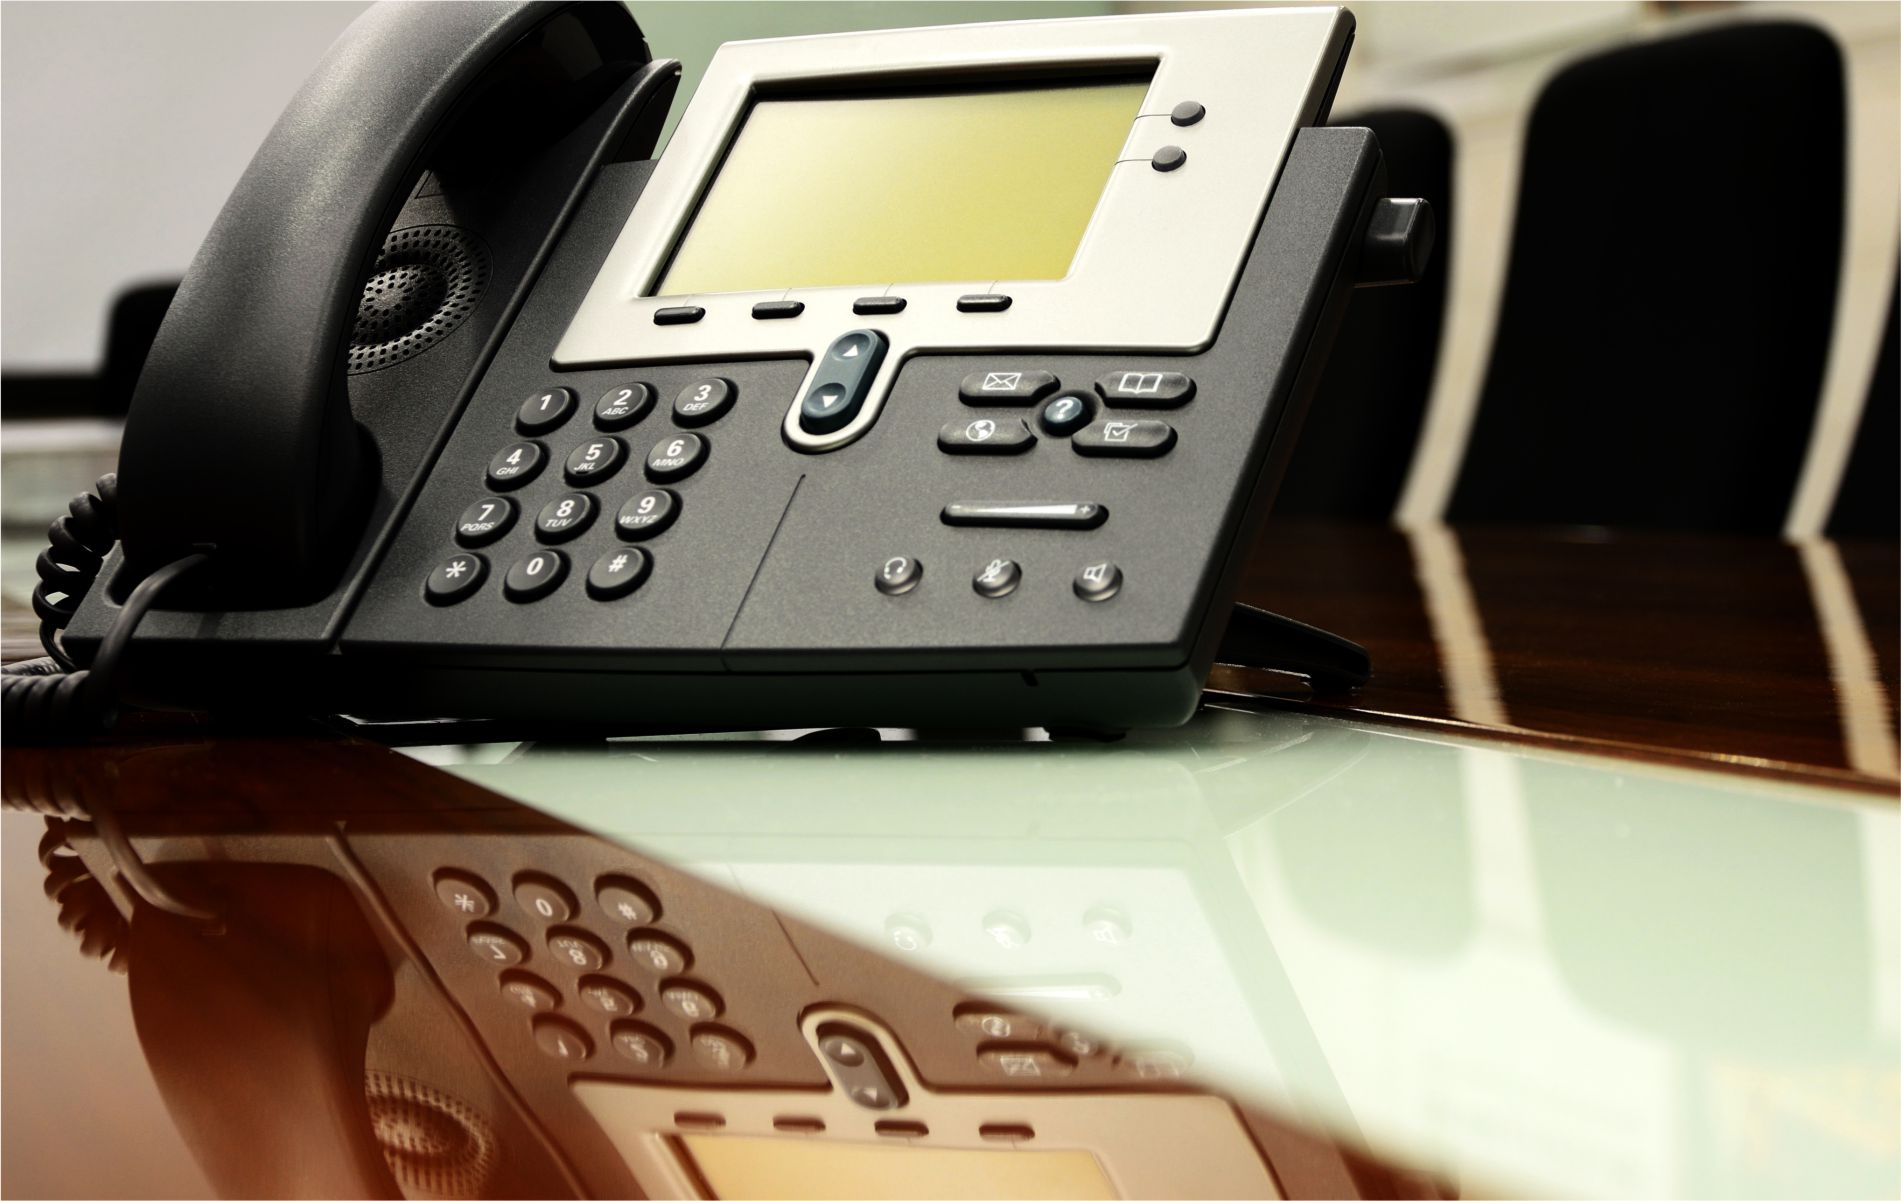 Are you eligible for a rebate on your telecoms worth up to £3000?